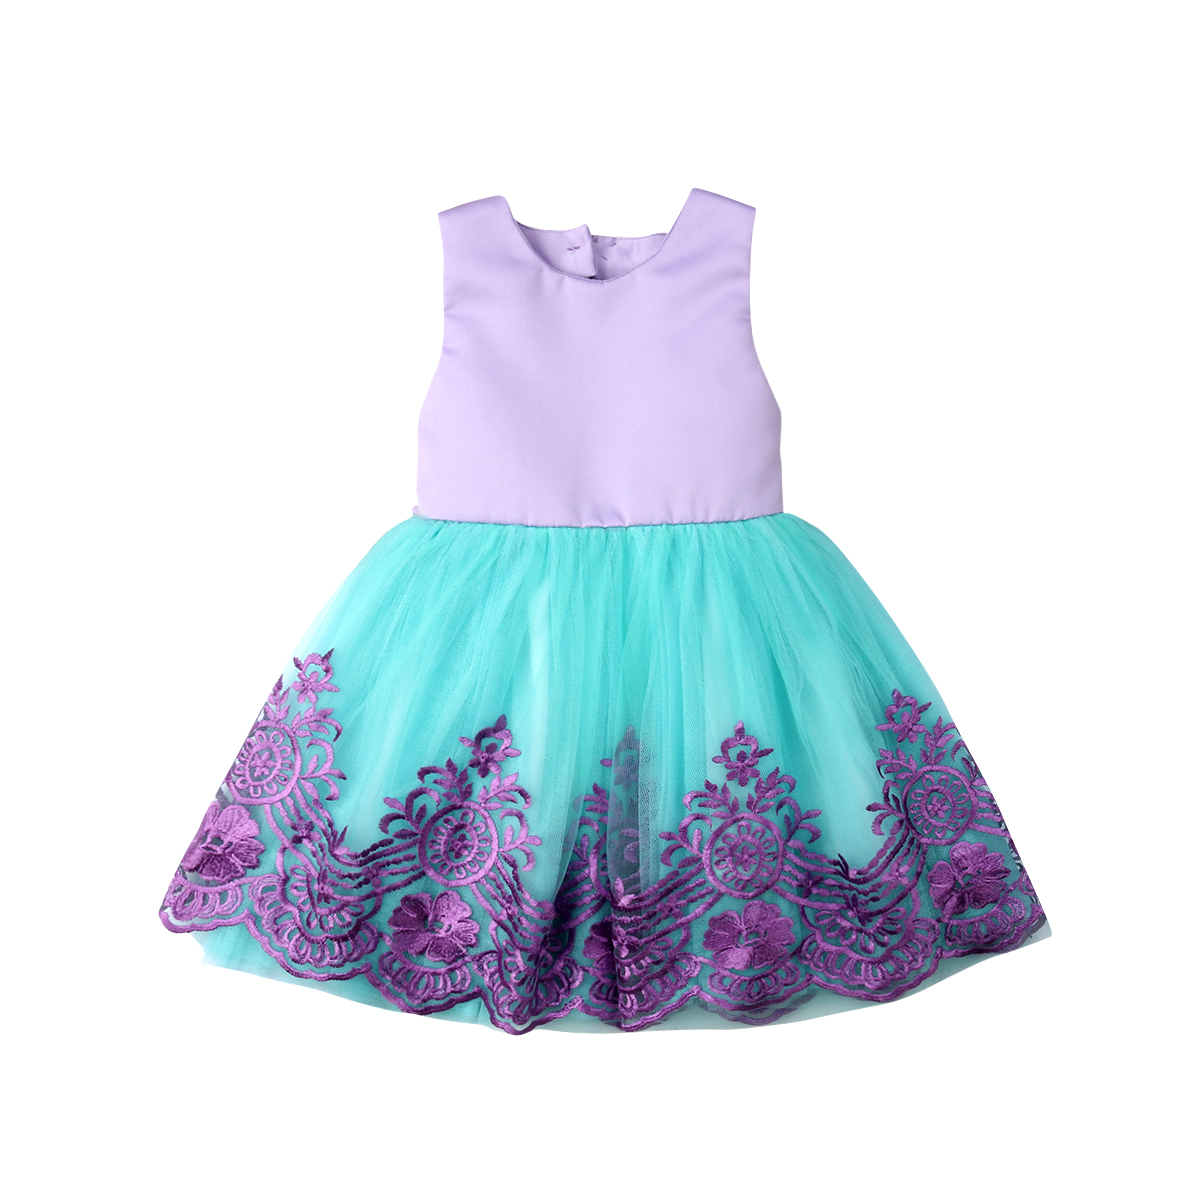 Lovely Summer Kids Baby Dress Girls Pageant Party Bow Princess Formal Gown Tutu Bridesmaid backless Dress